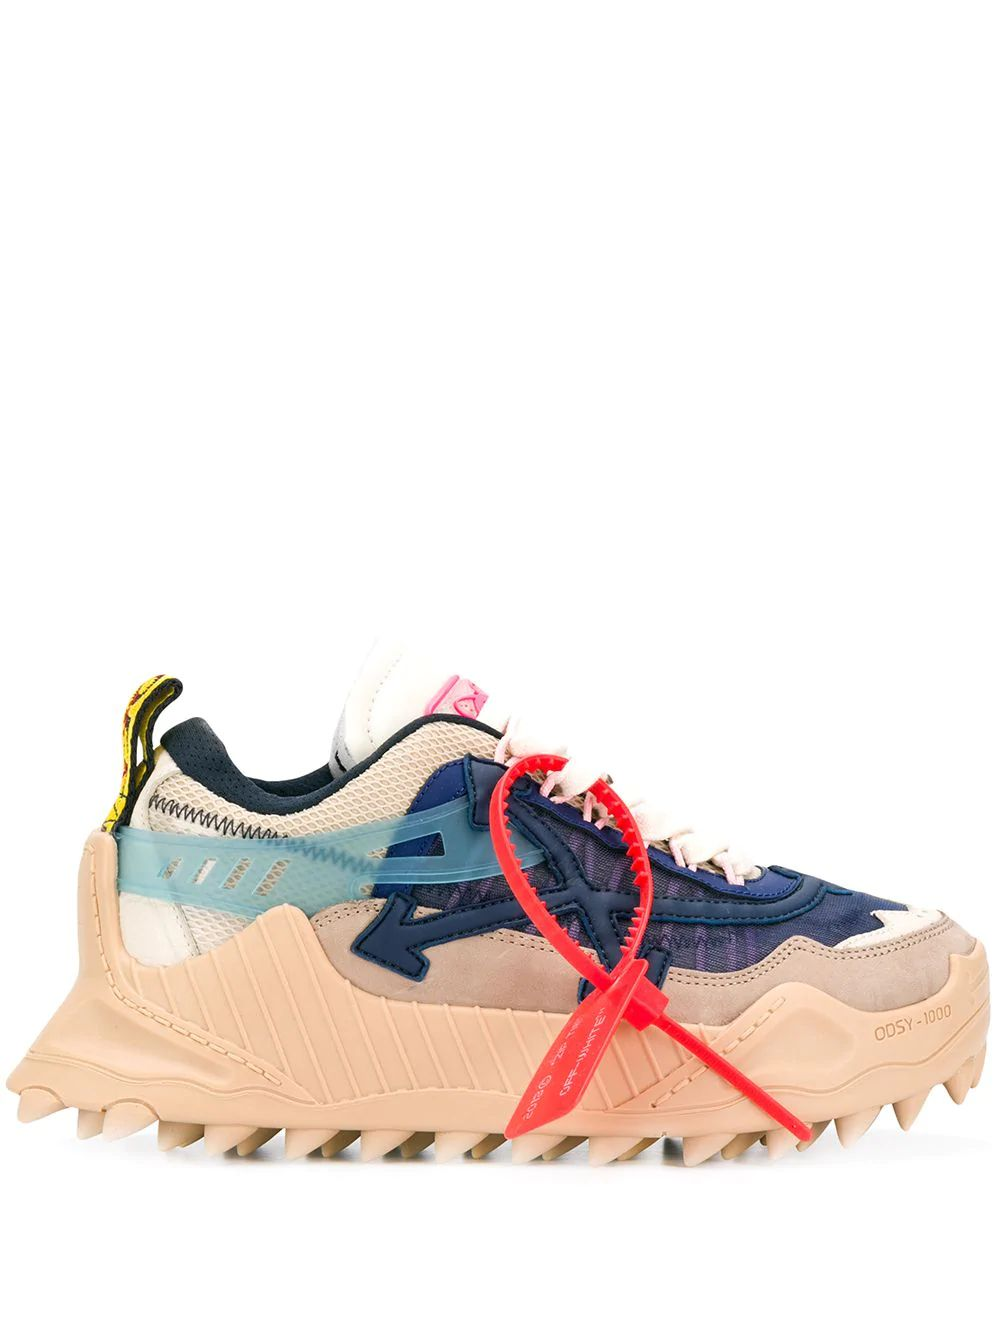 OFF-WHITE BEIGE LEATHER SNEAKERS